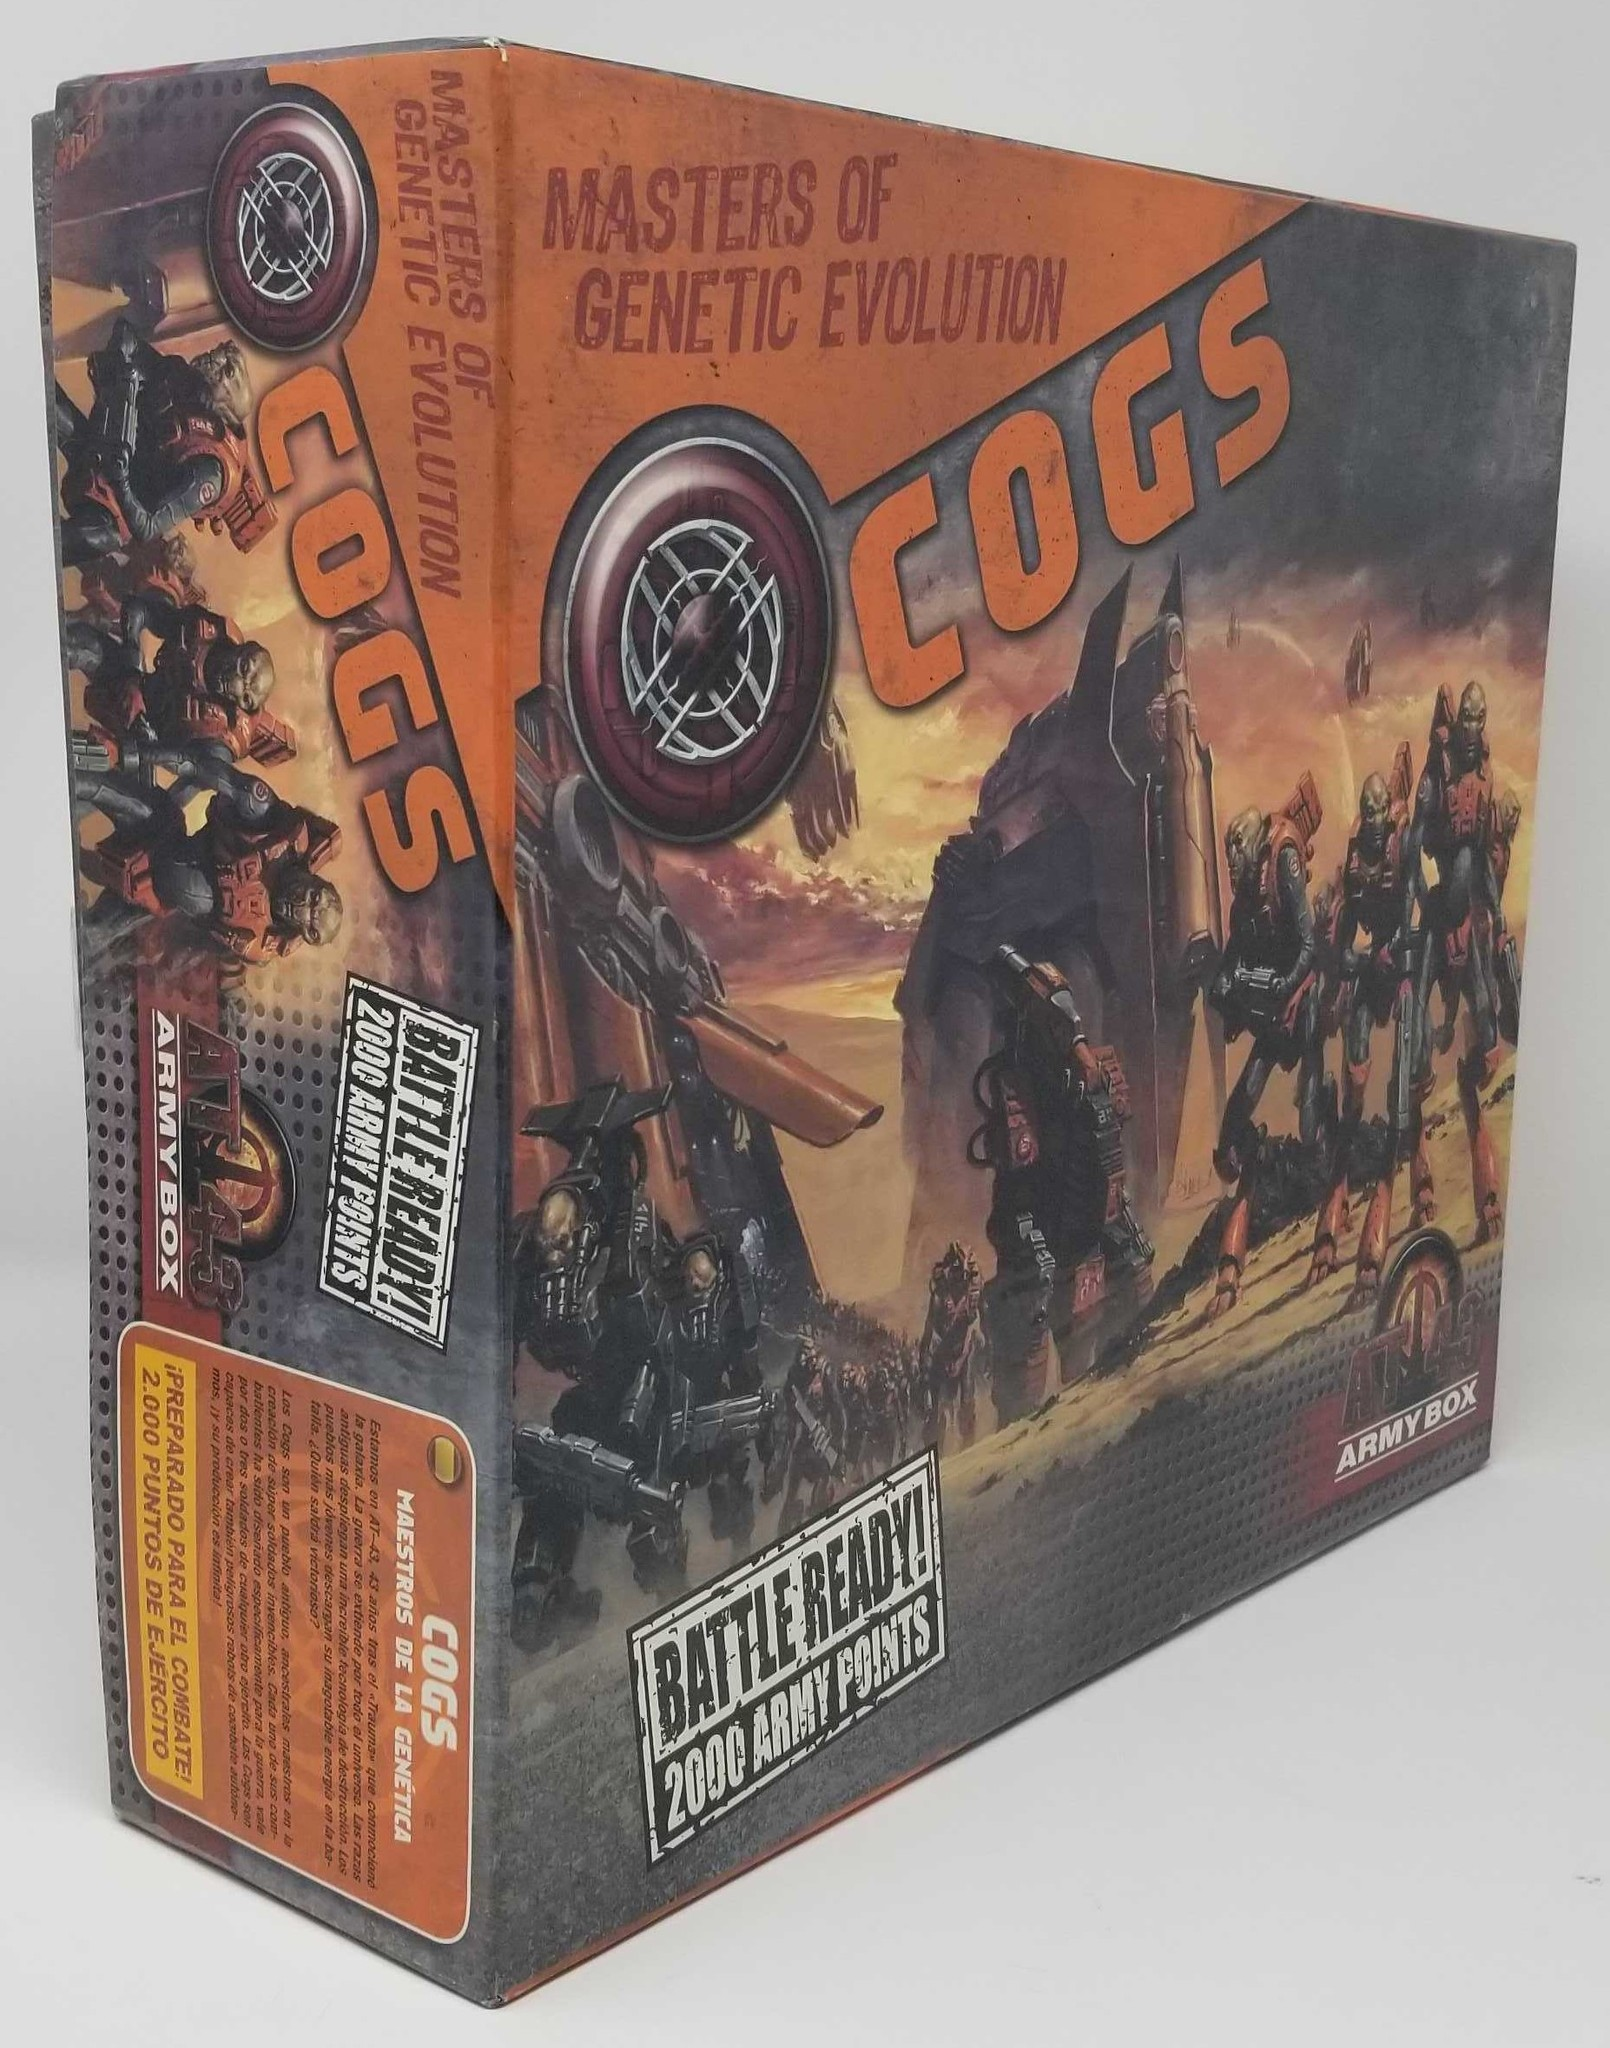 AT 43 COGS Army Box - Rakham